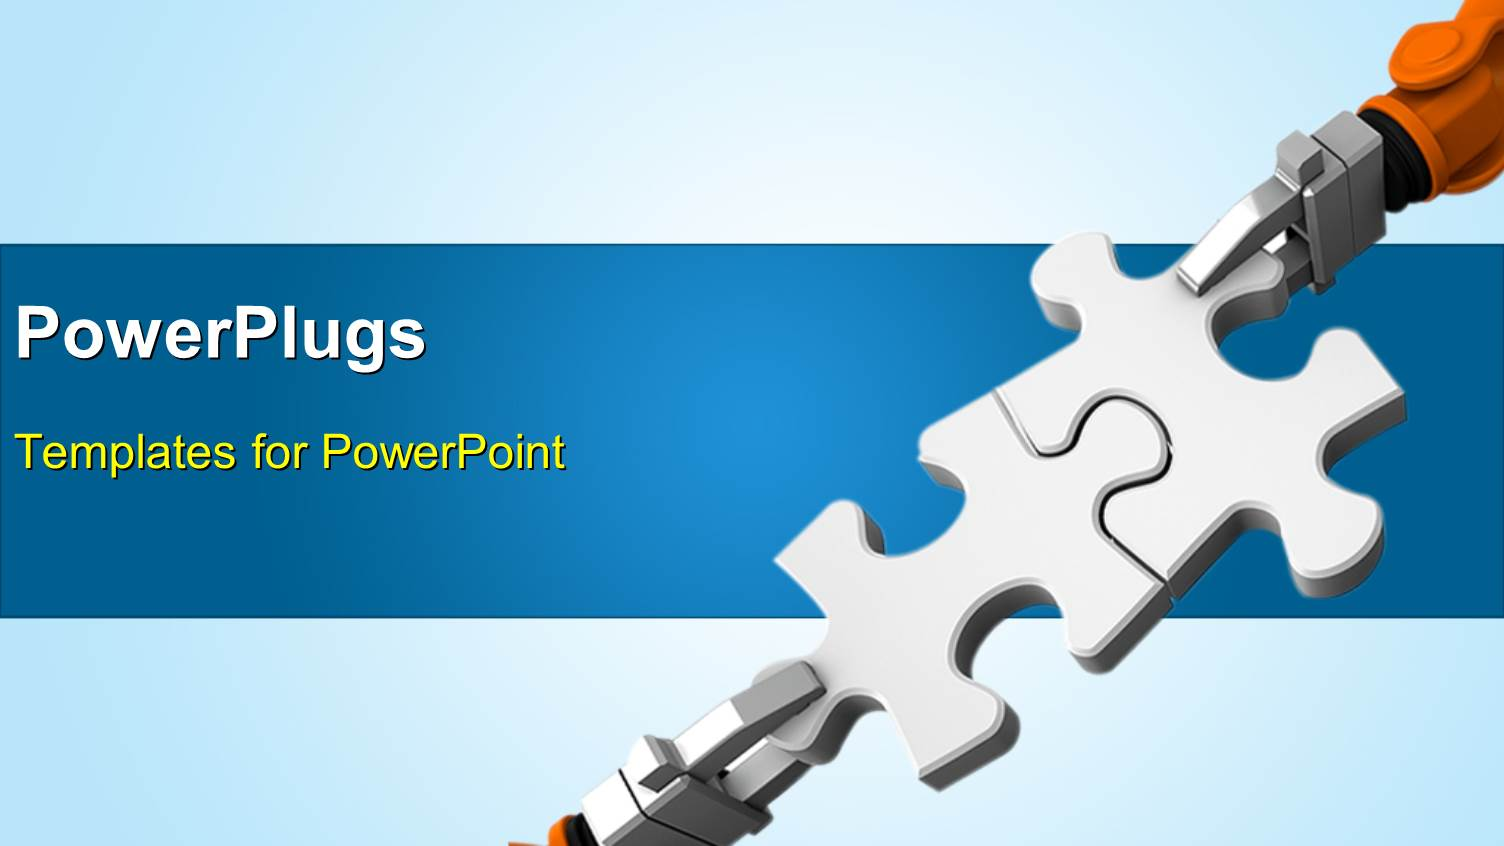 Automation powerpoint templates ppt themes with automation amazing ppt theme consisting of robot holding jigsaw puzzle piece on a blue background template size toneelgroepblik Gallery